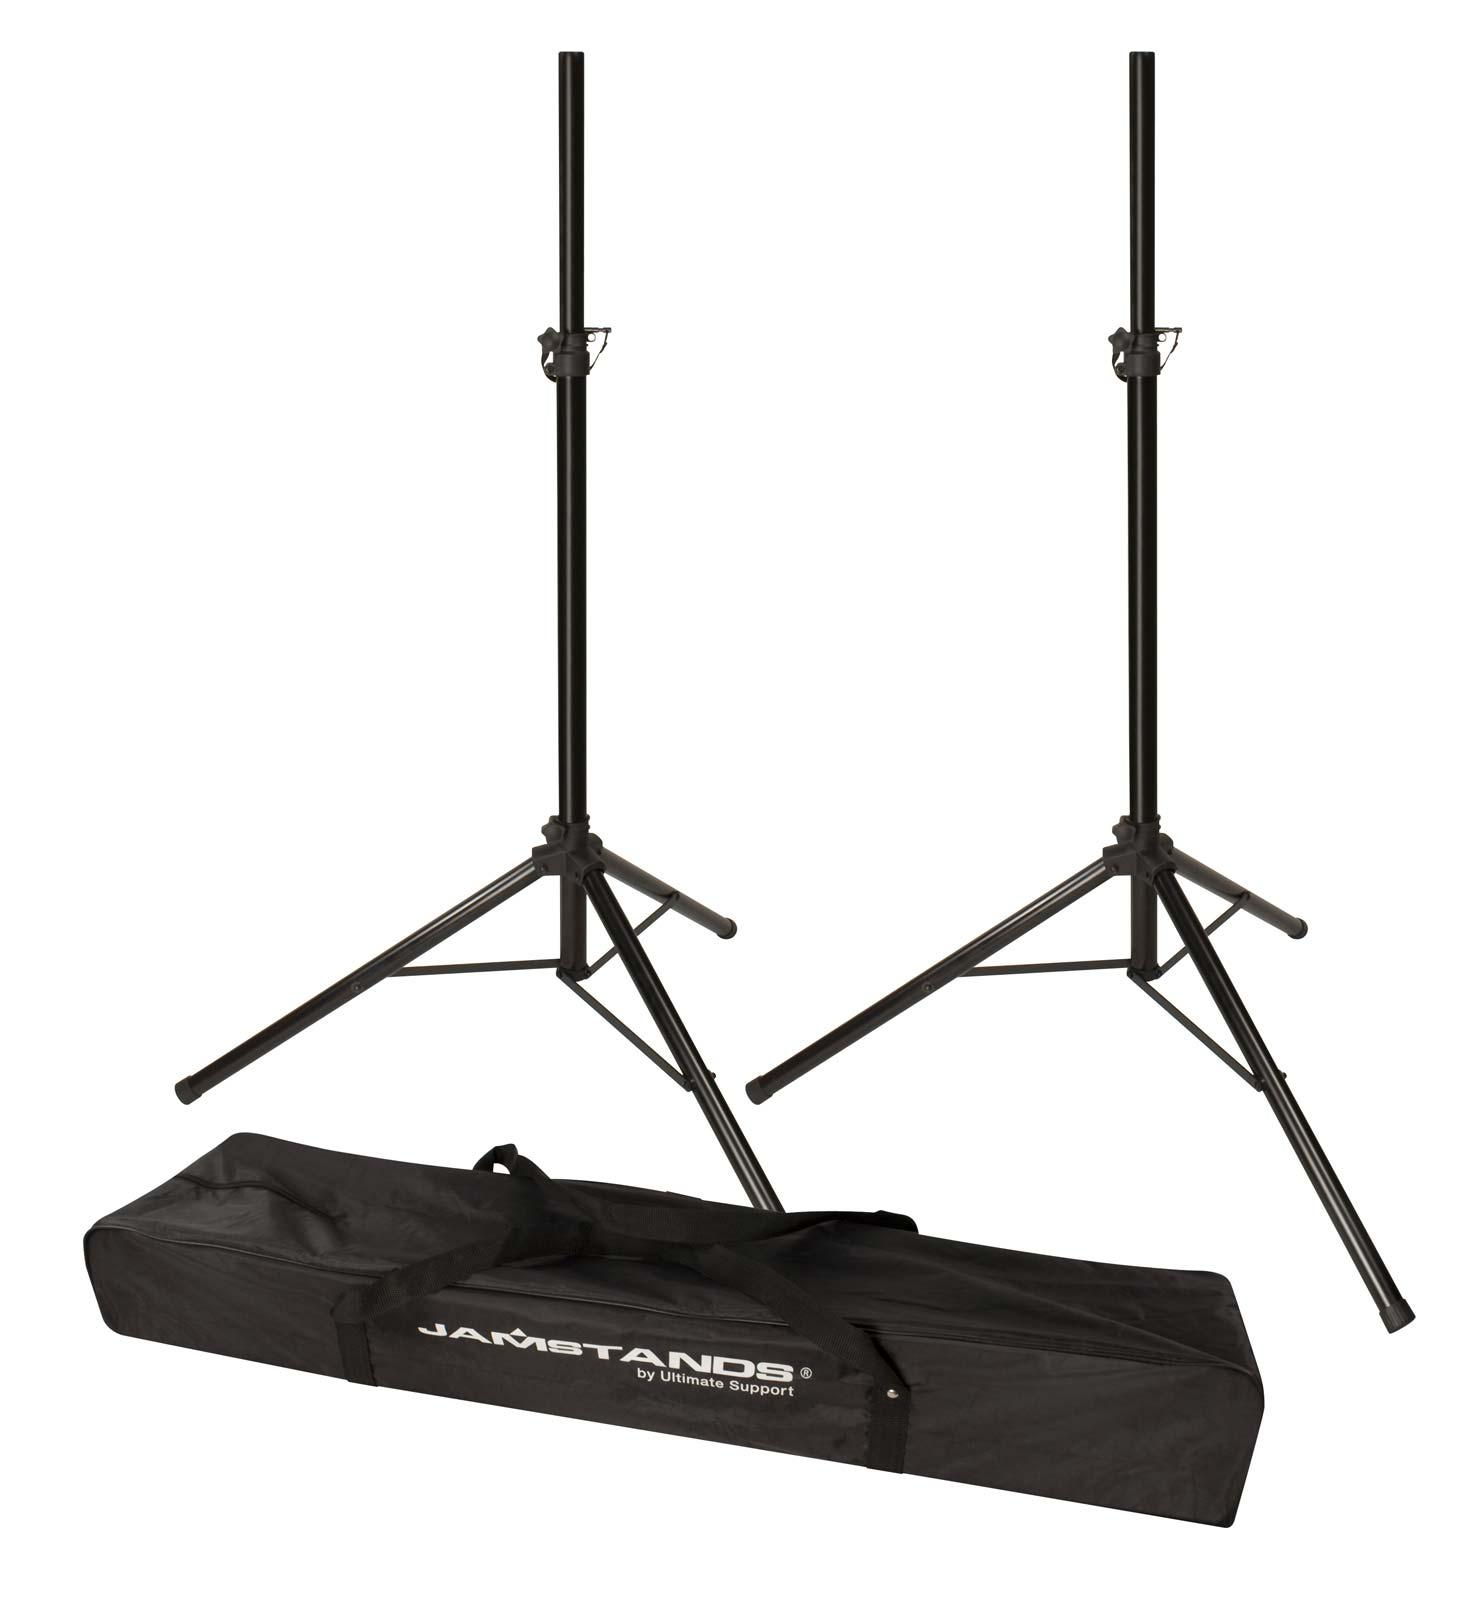 Ultimate Support Js Ts50 2 Jamstands Tripod Speaker